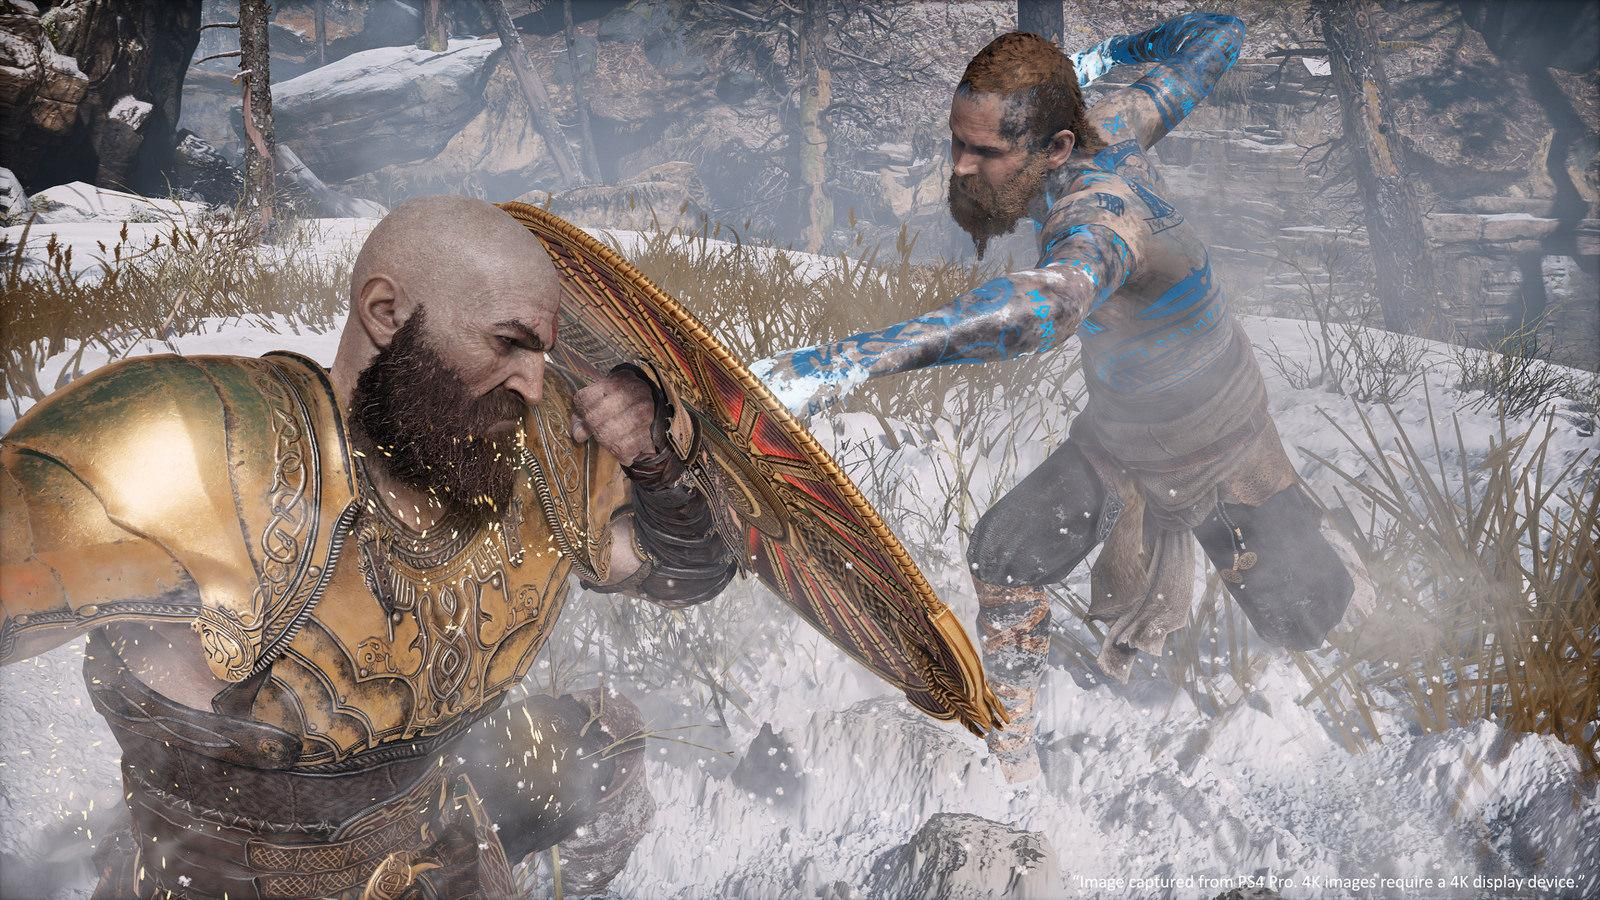 E3 2018: God of War getting a New Game Plus